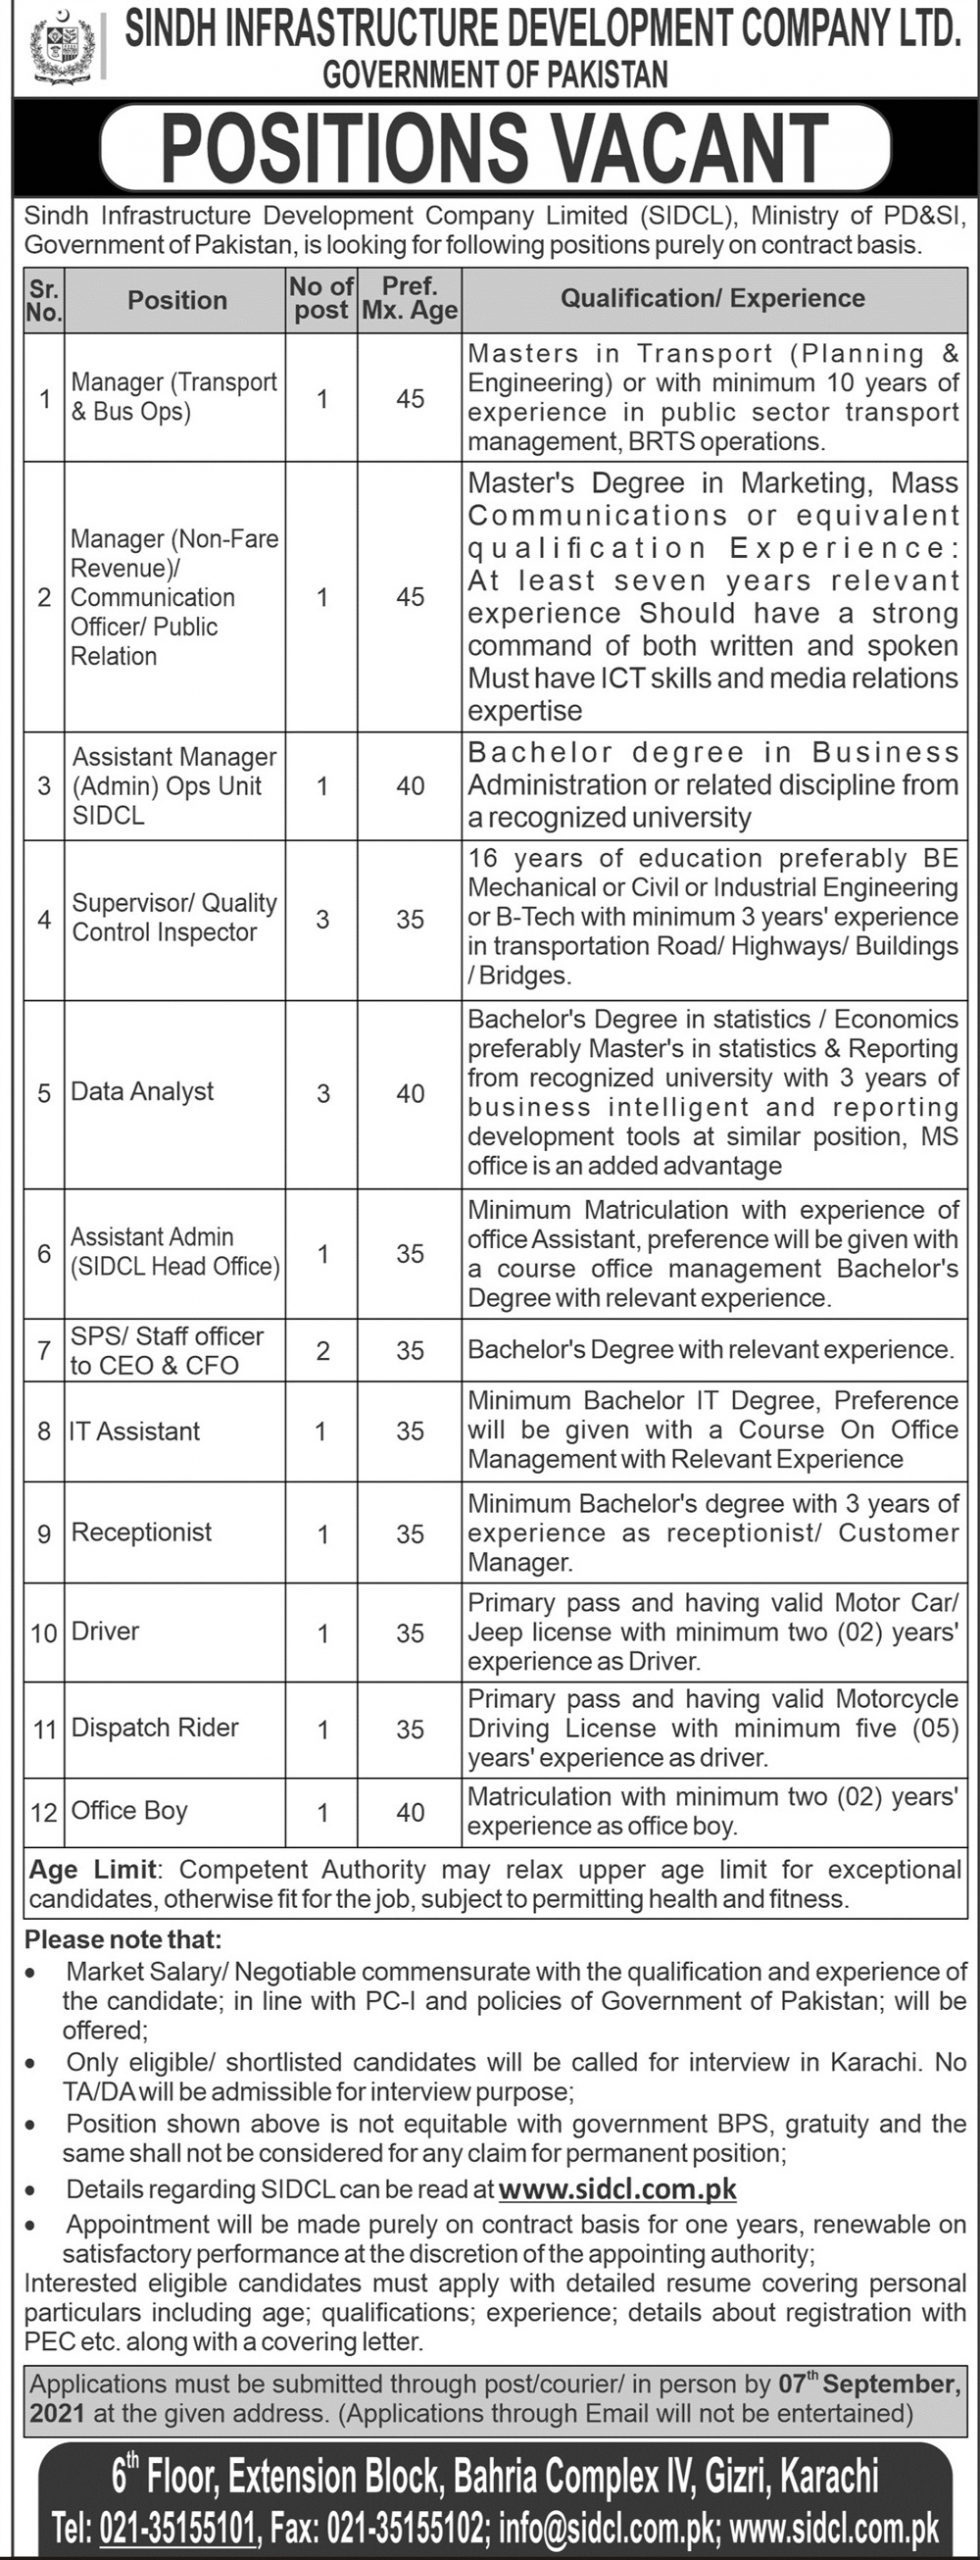 Sindh Infrastructure Development Company Limited SIDCL Jobs 2021